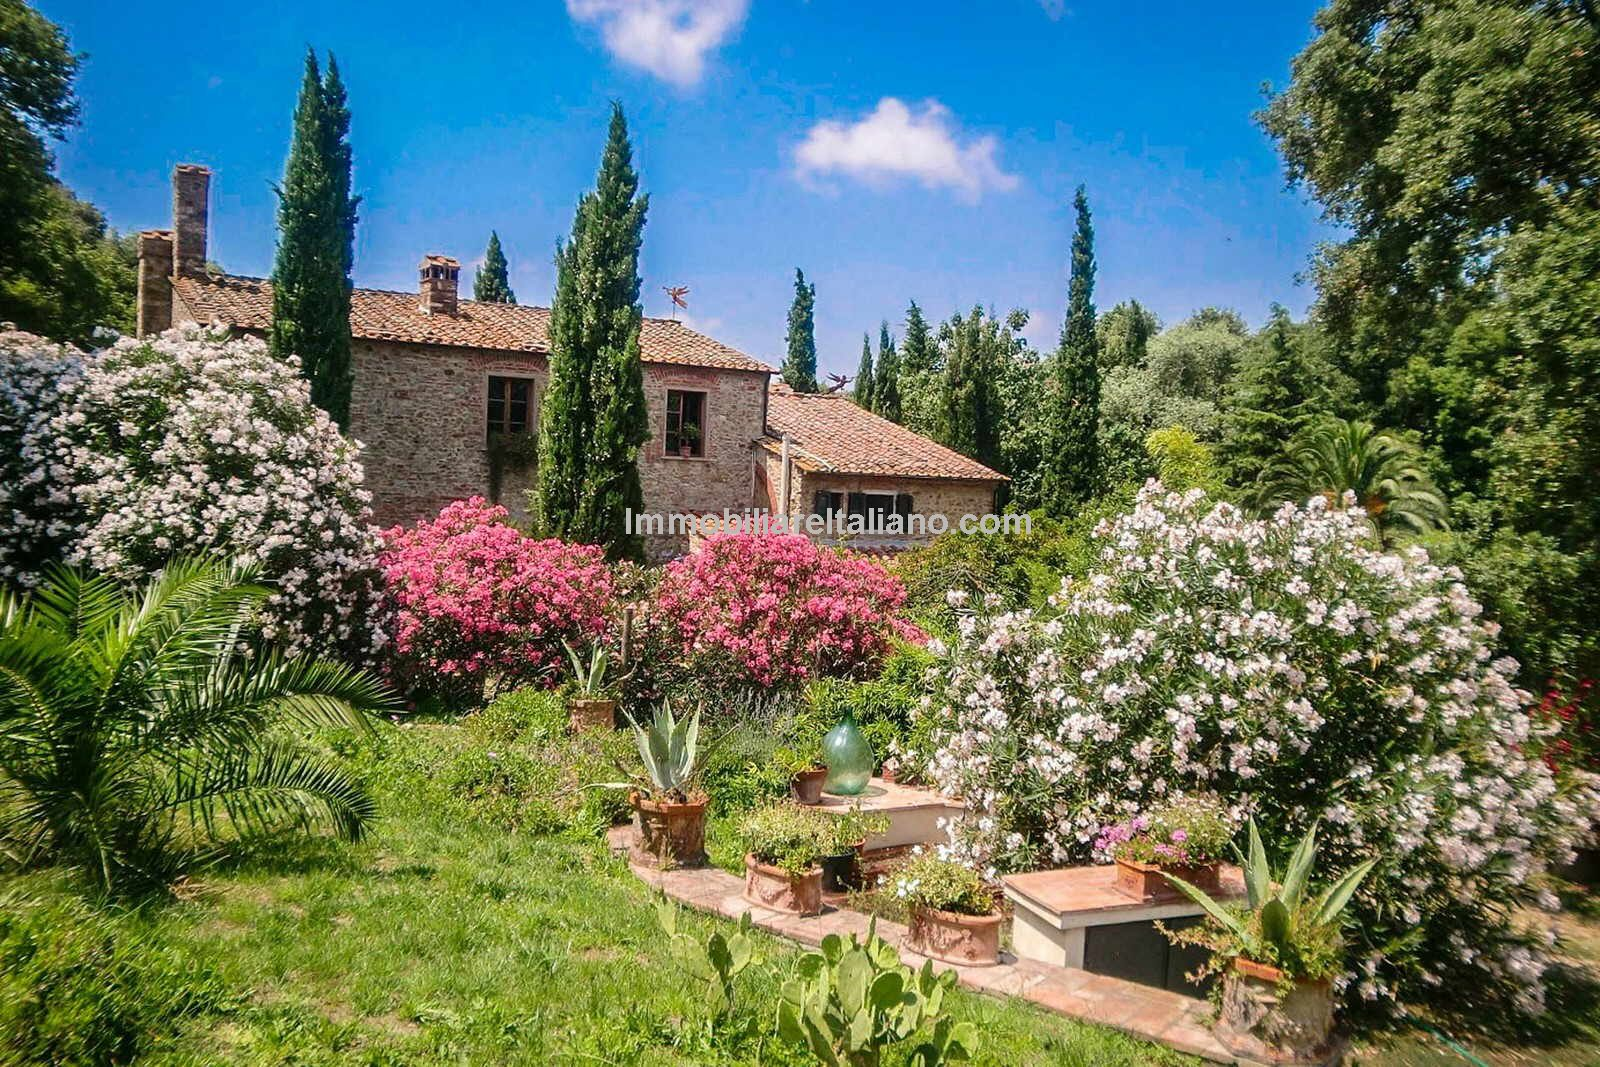 Restored property near the Tuscan coast